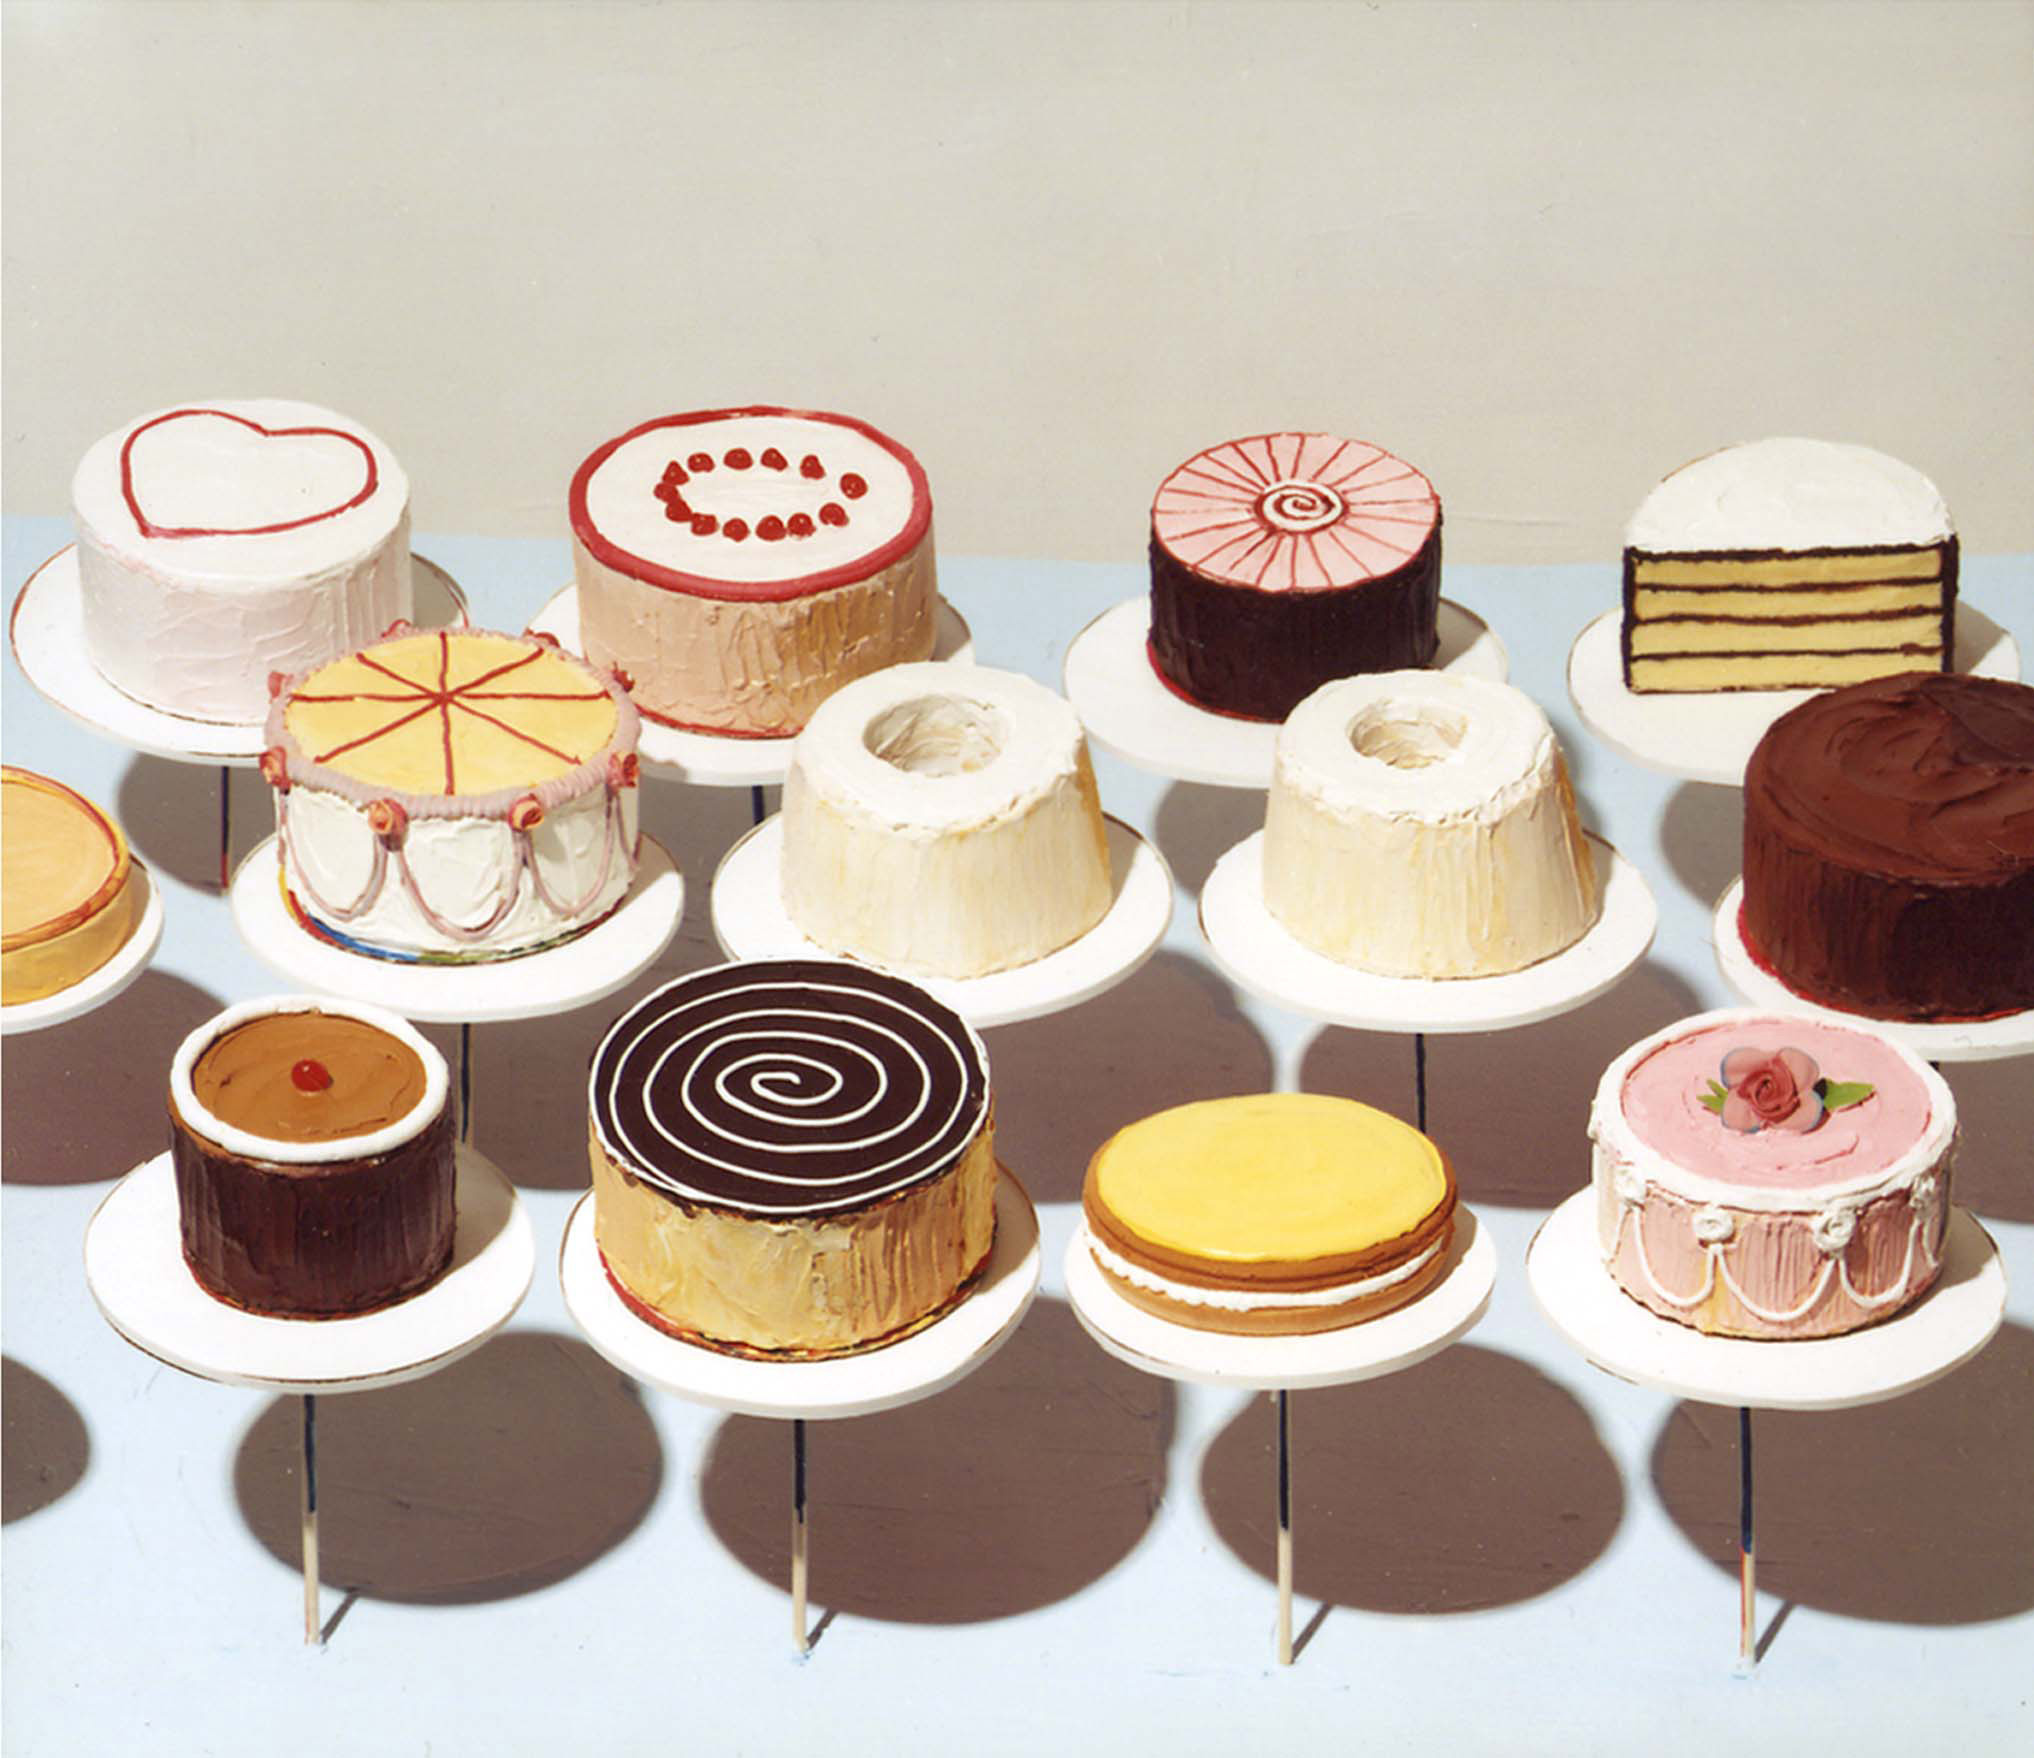 Google Turns 12 With A Cake By Thiebaud The Inspiration Room